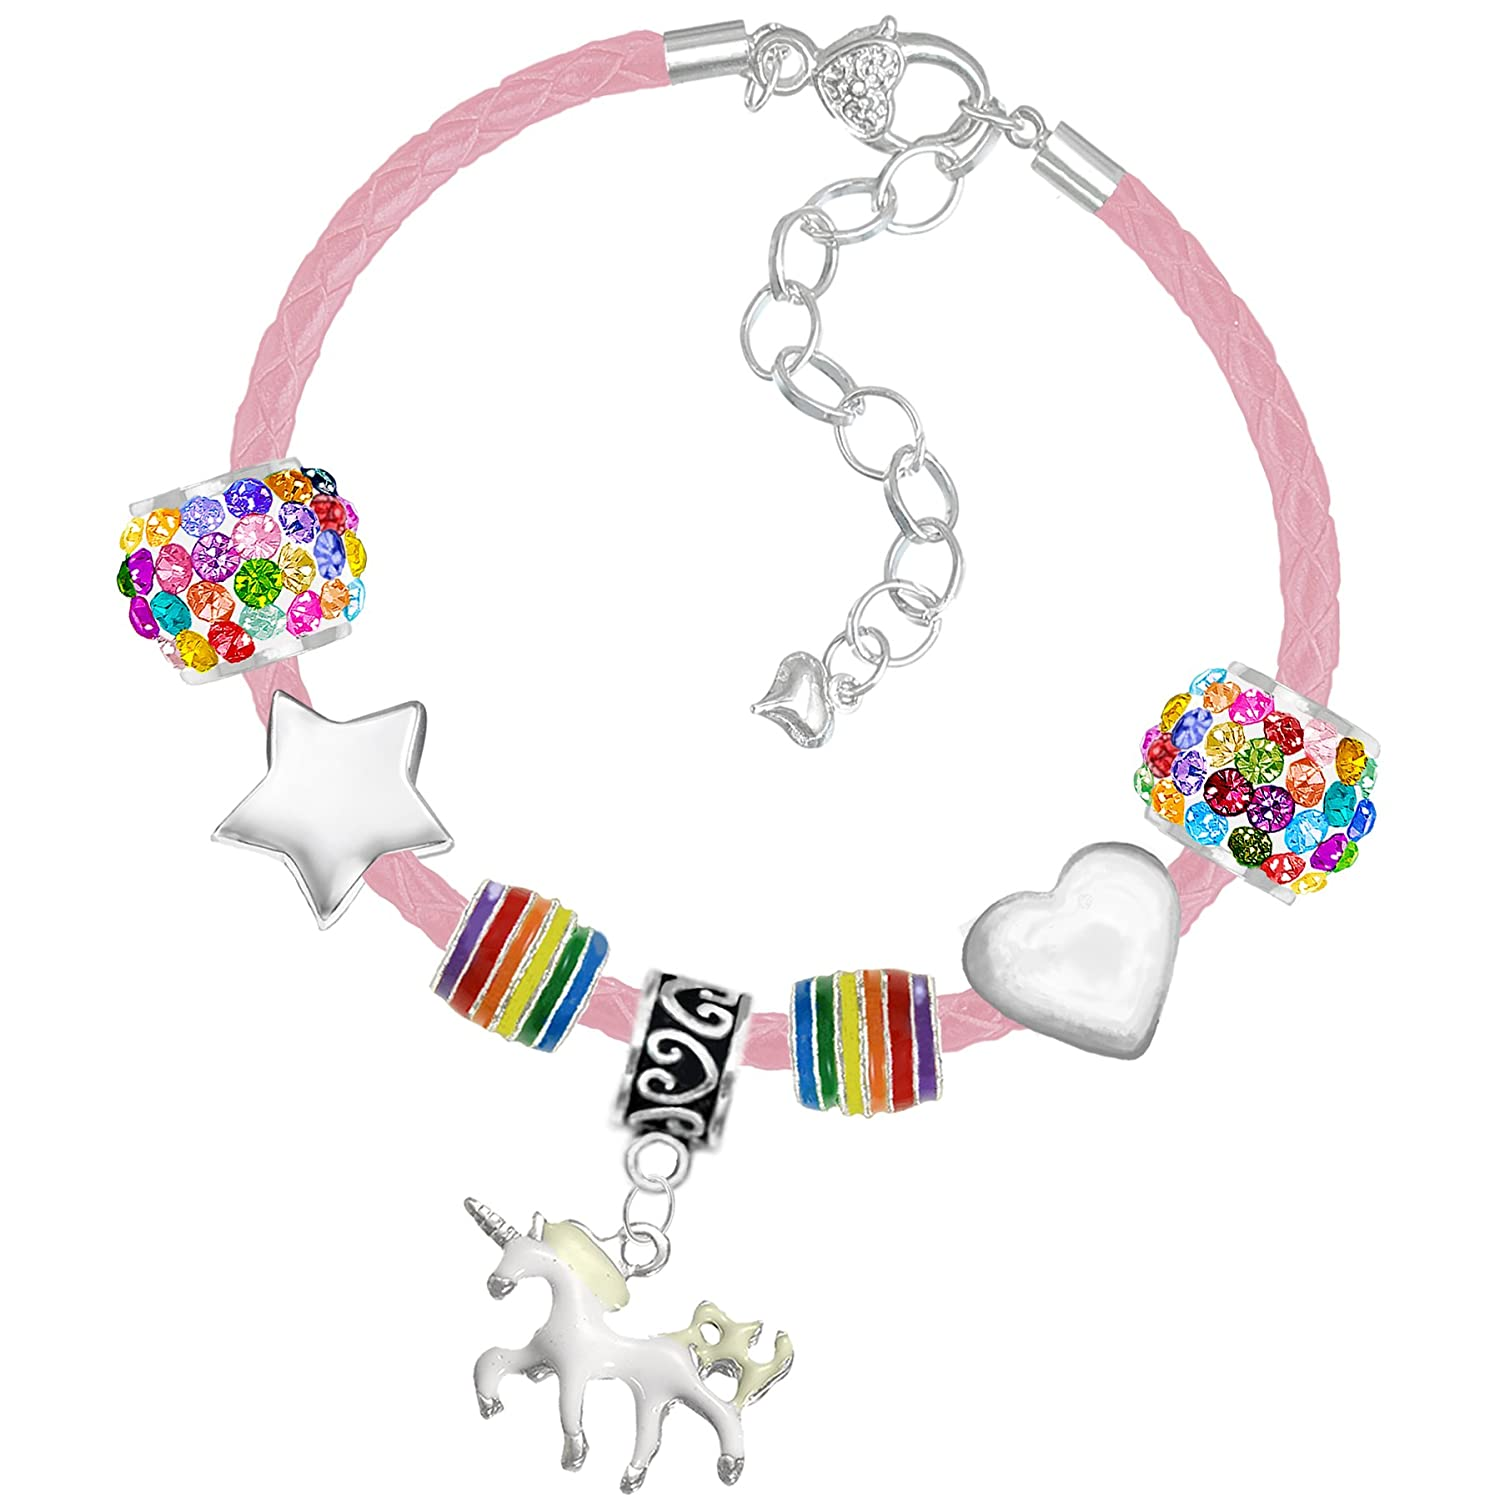 Girls Magical Unicorn Sparkly Charm Bracelet Set with Greeting Card and Gift Box Kids Jewellery Charm Buddy ®